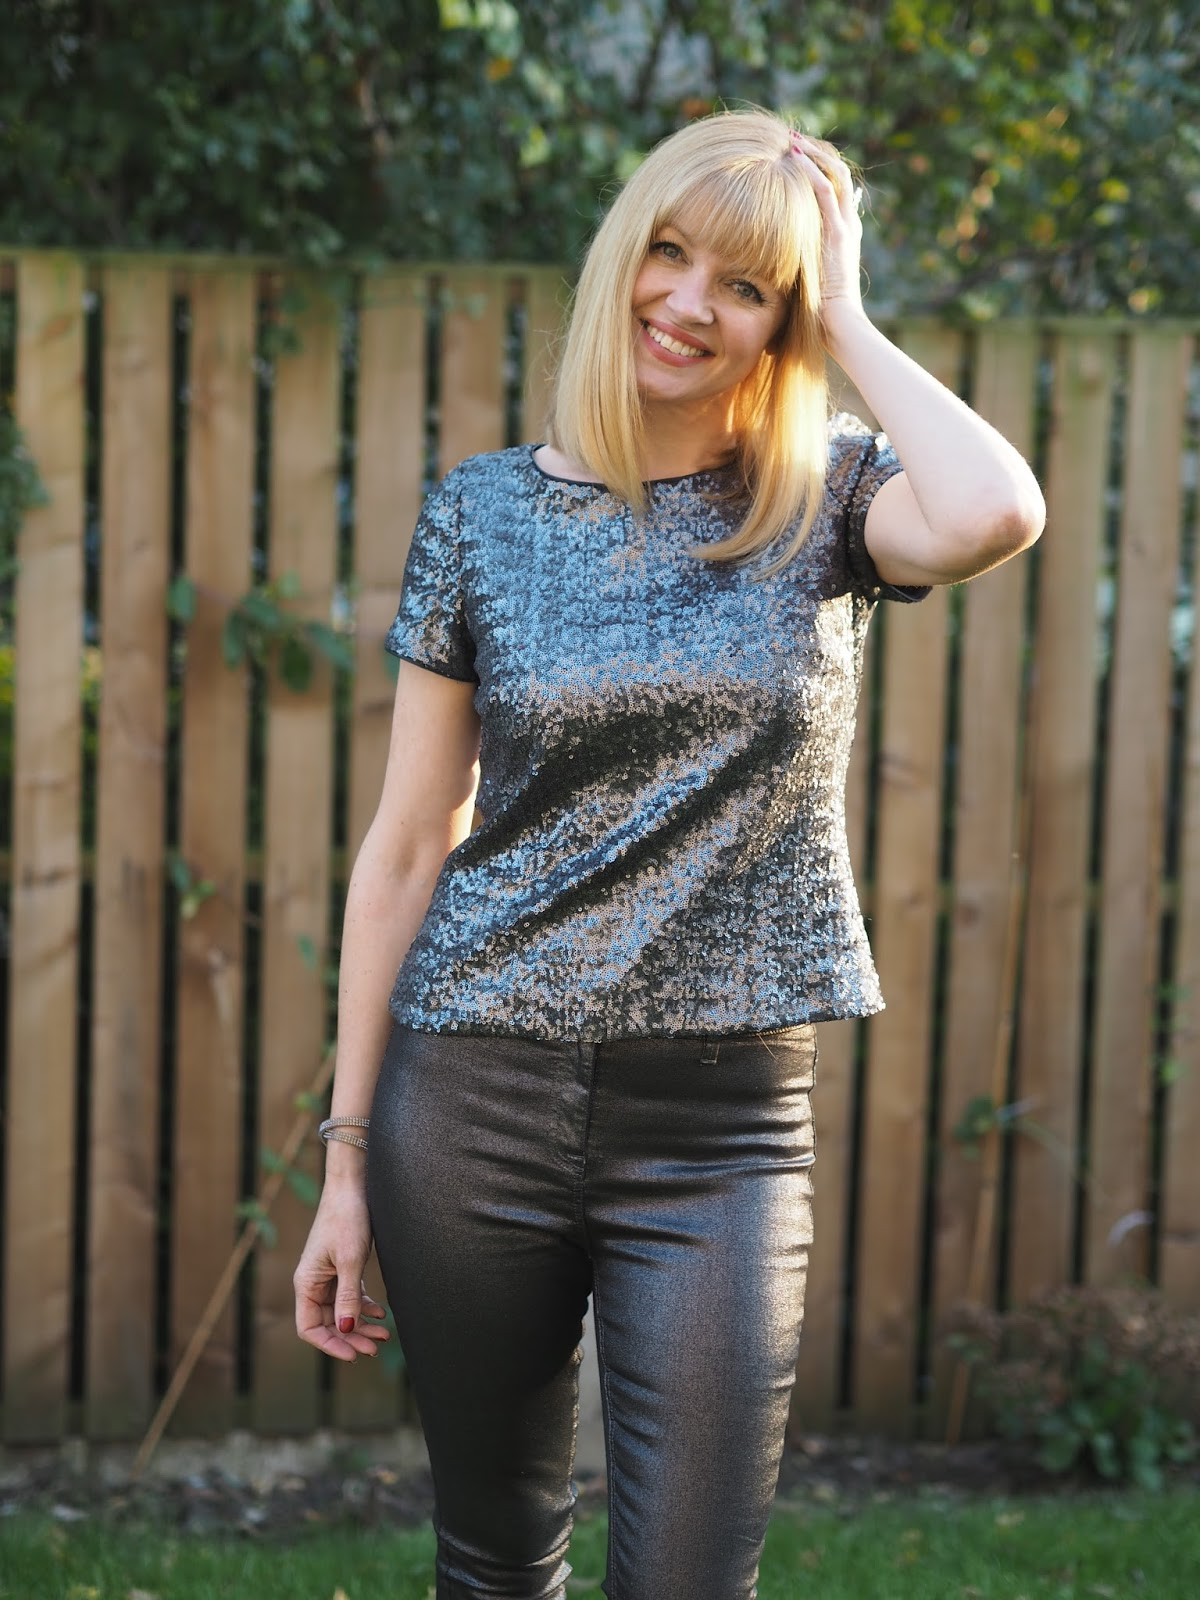 Gunmetal Sequin Top with Super Skinny Metallic Jeans and Snow Leopard Print Boots